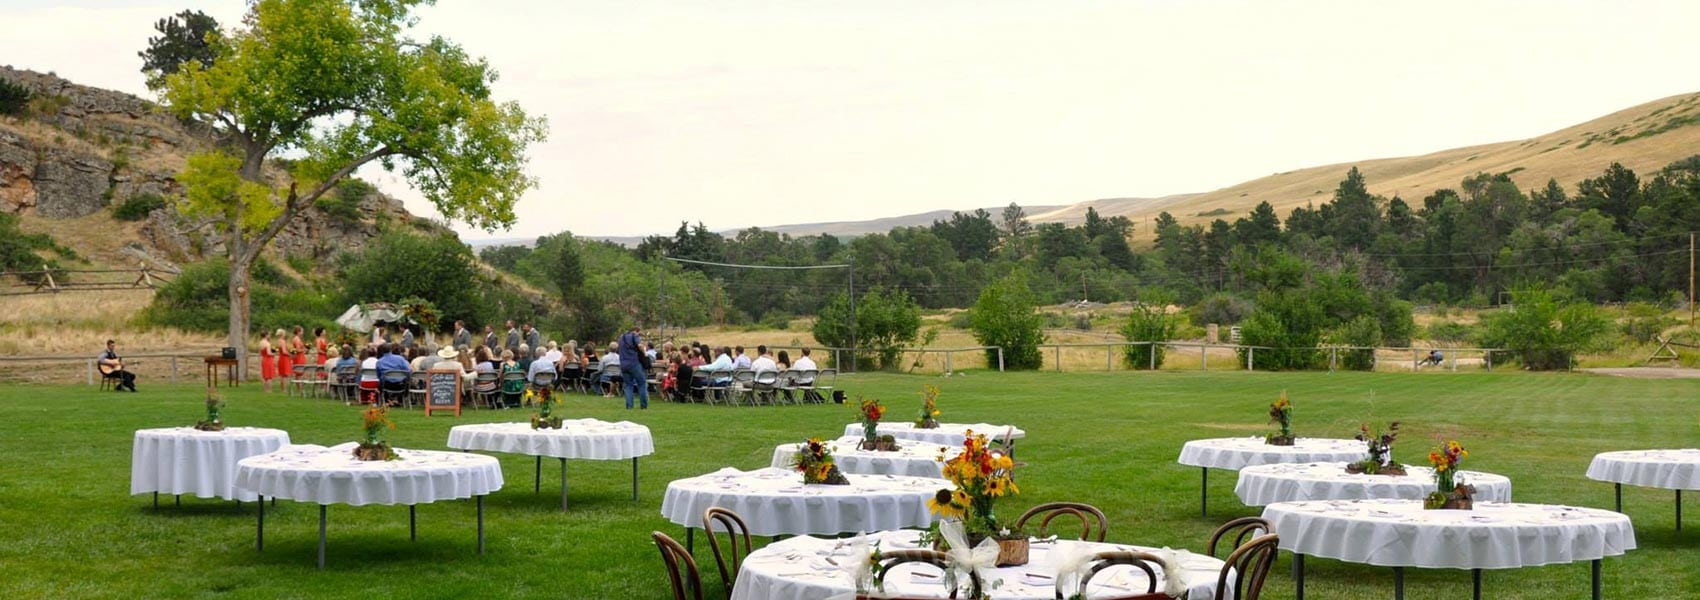 Wedding reception tables set up outside